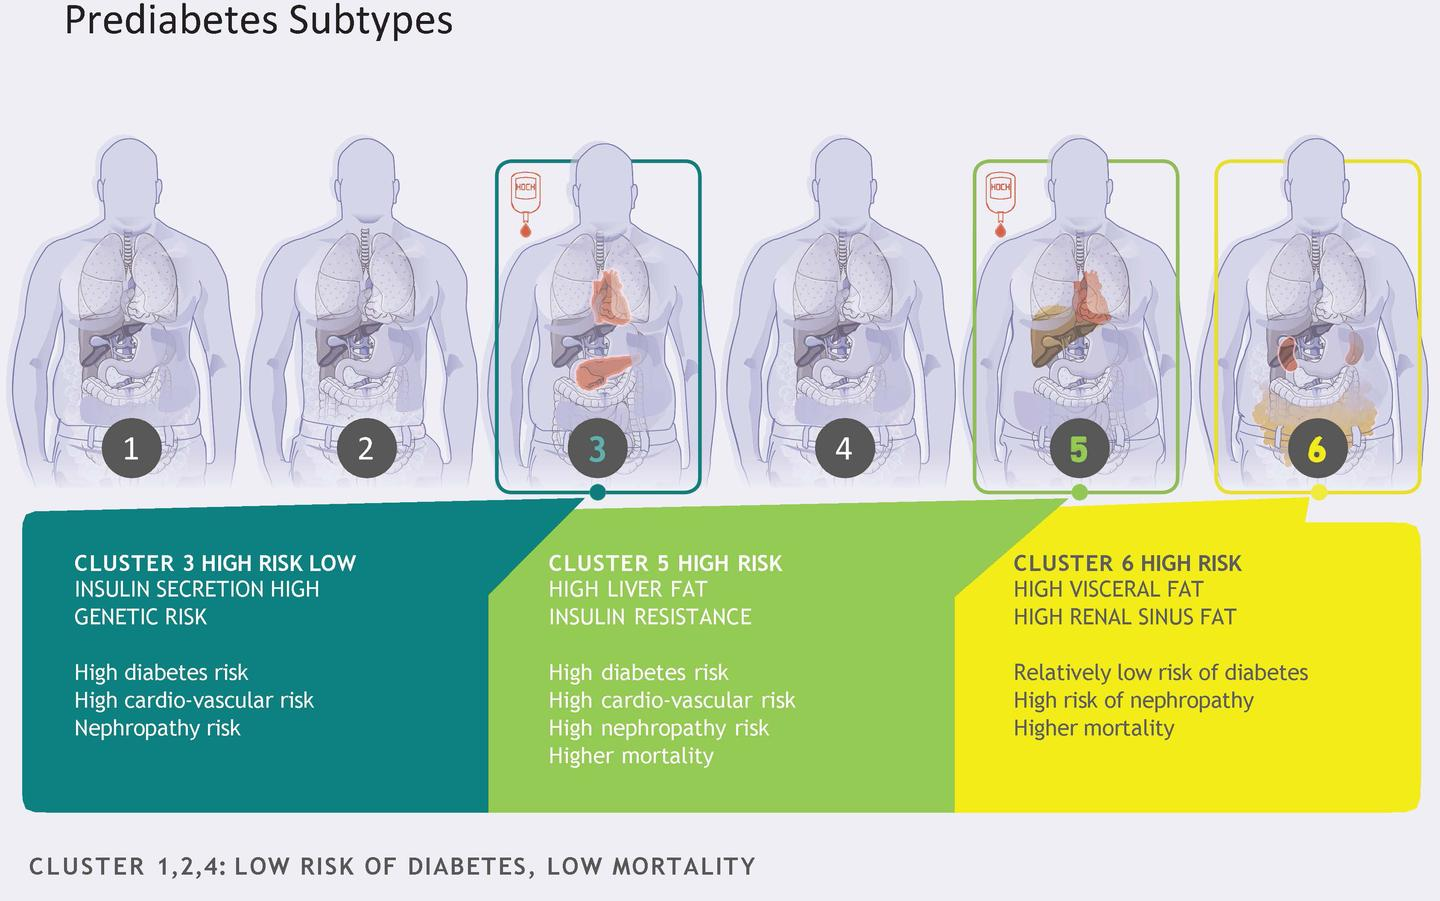 The research identified six distinguishable prediabetes subtypes, or clusters